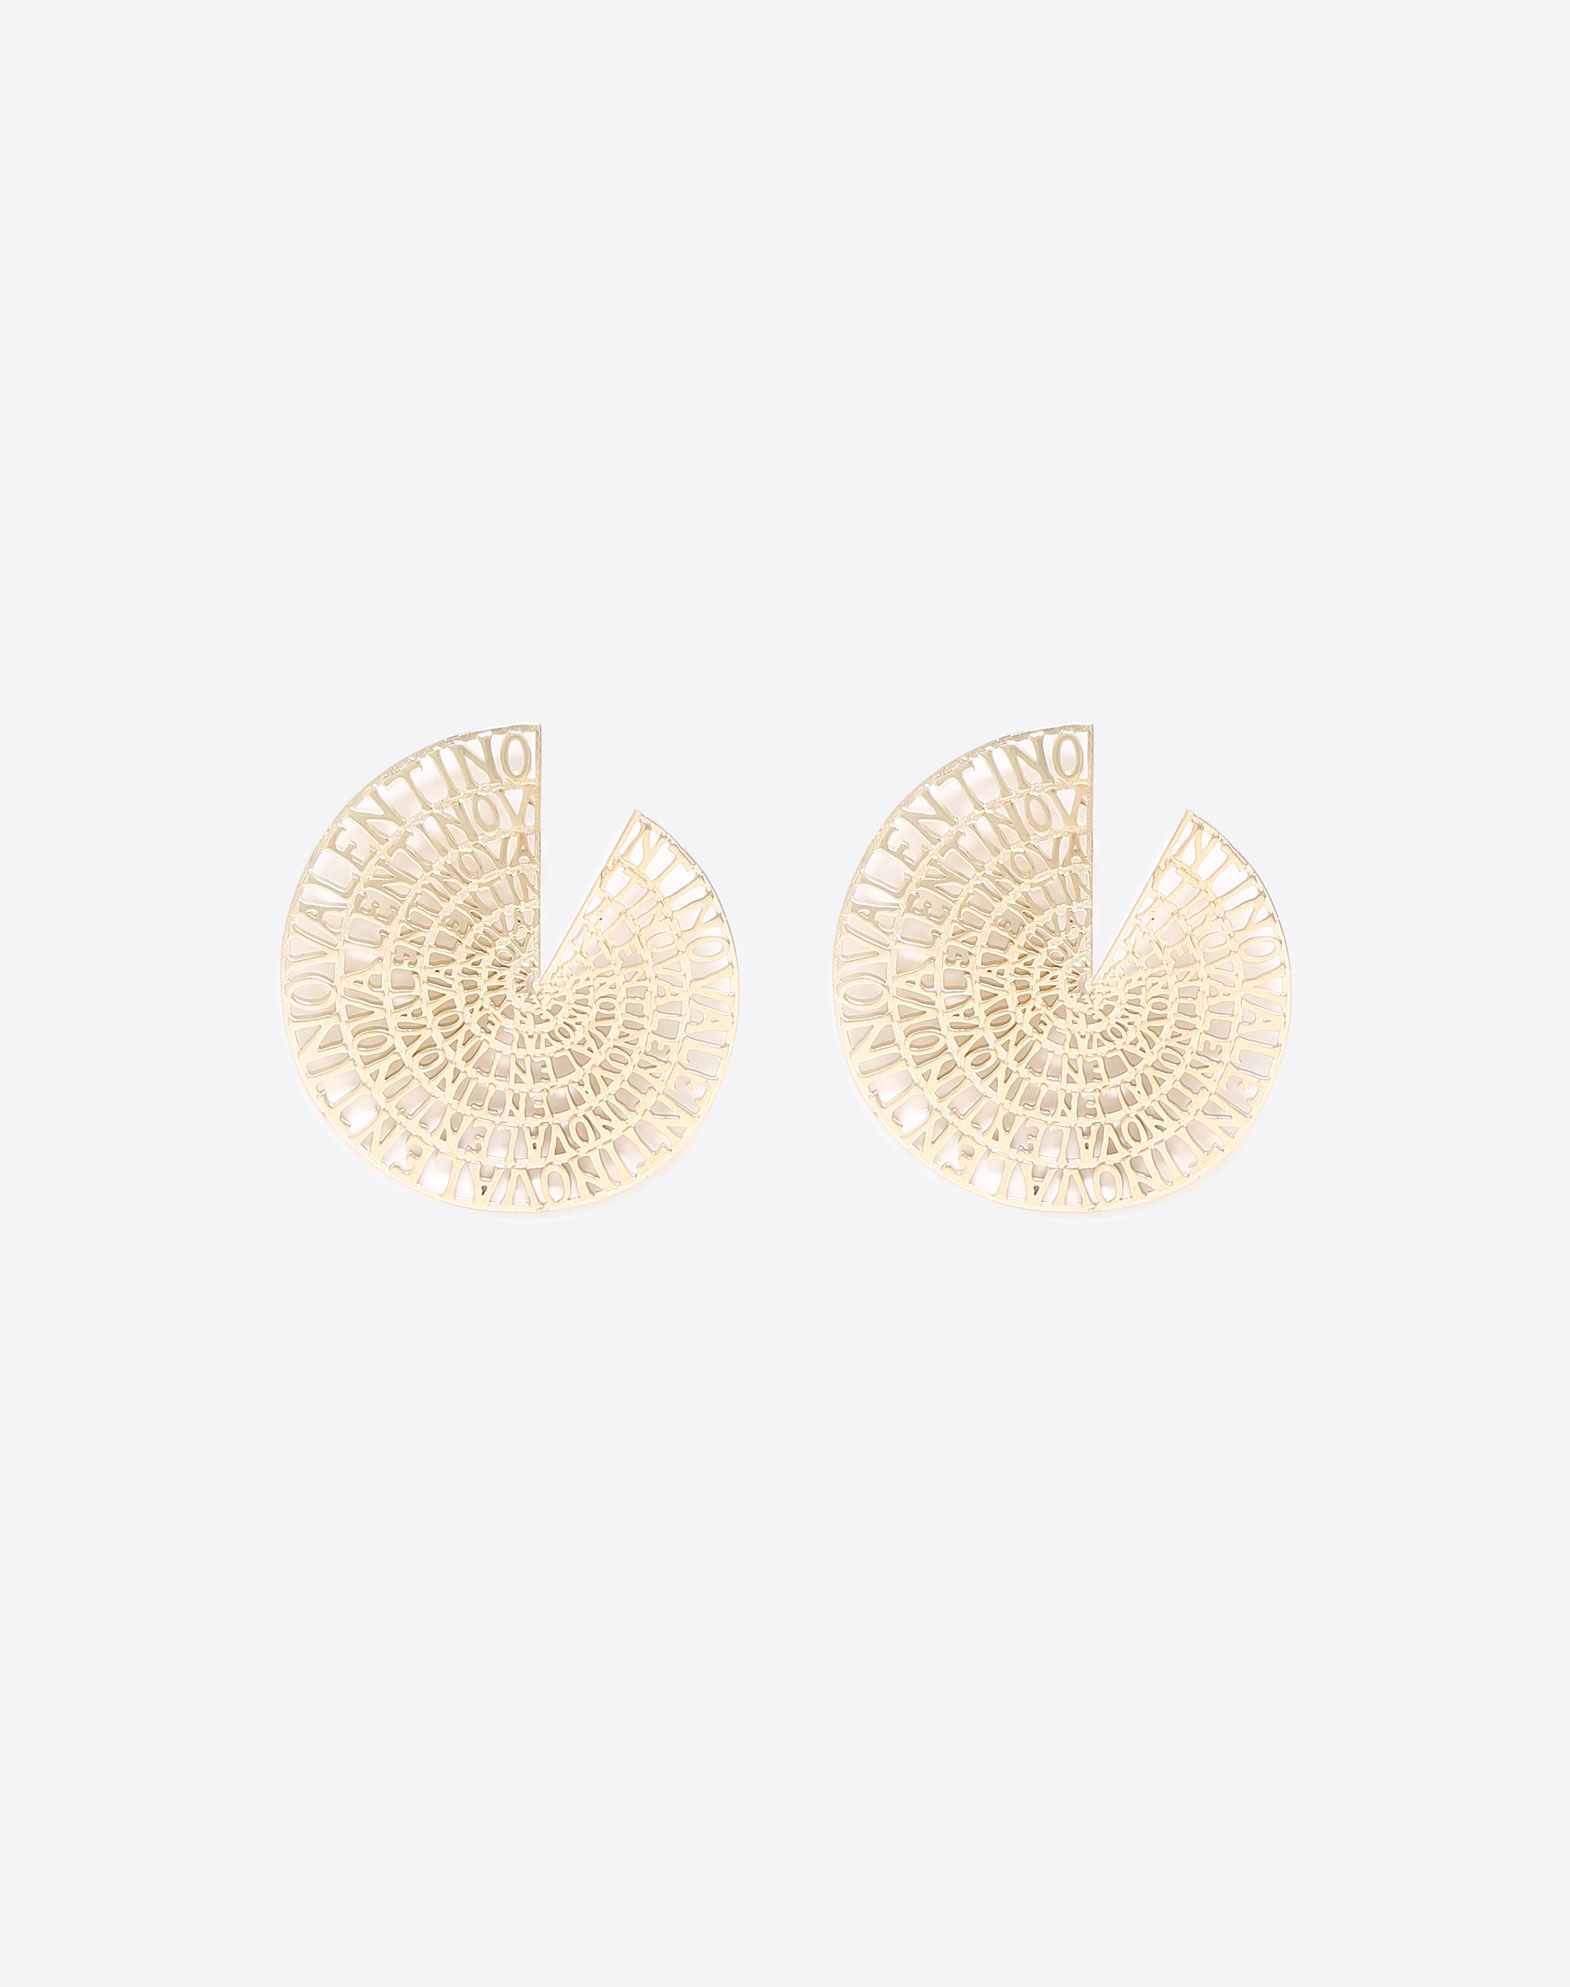 Earrings with Valentino logo detail